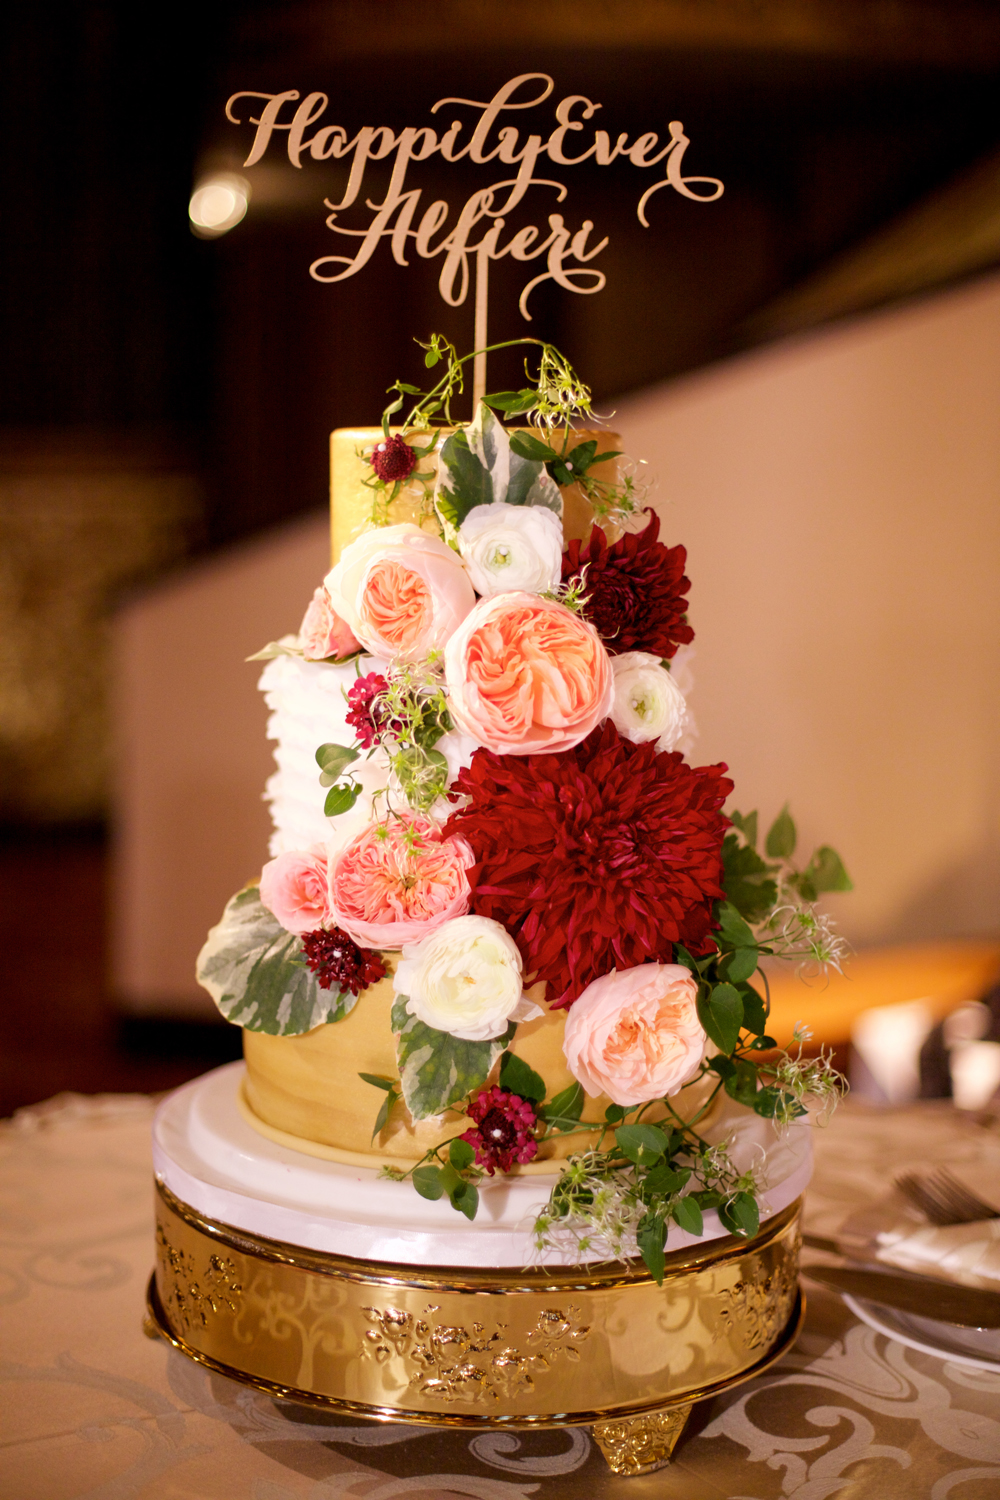 fall wedding cake with fresh flowers, garden roses, red dahlias, gold layer